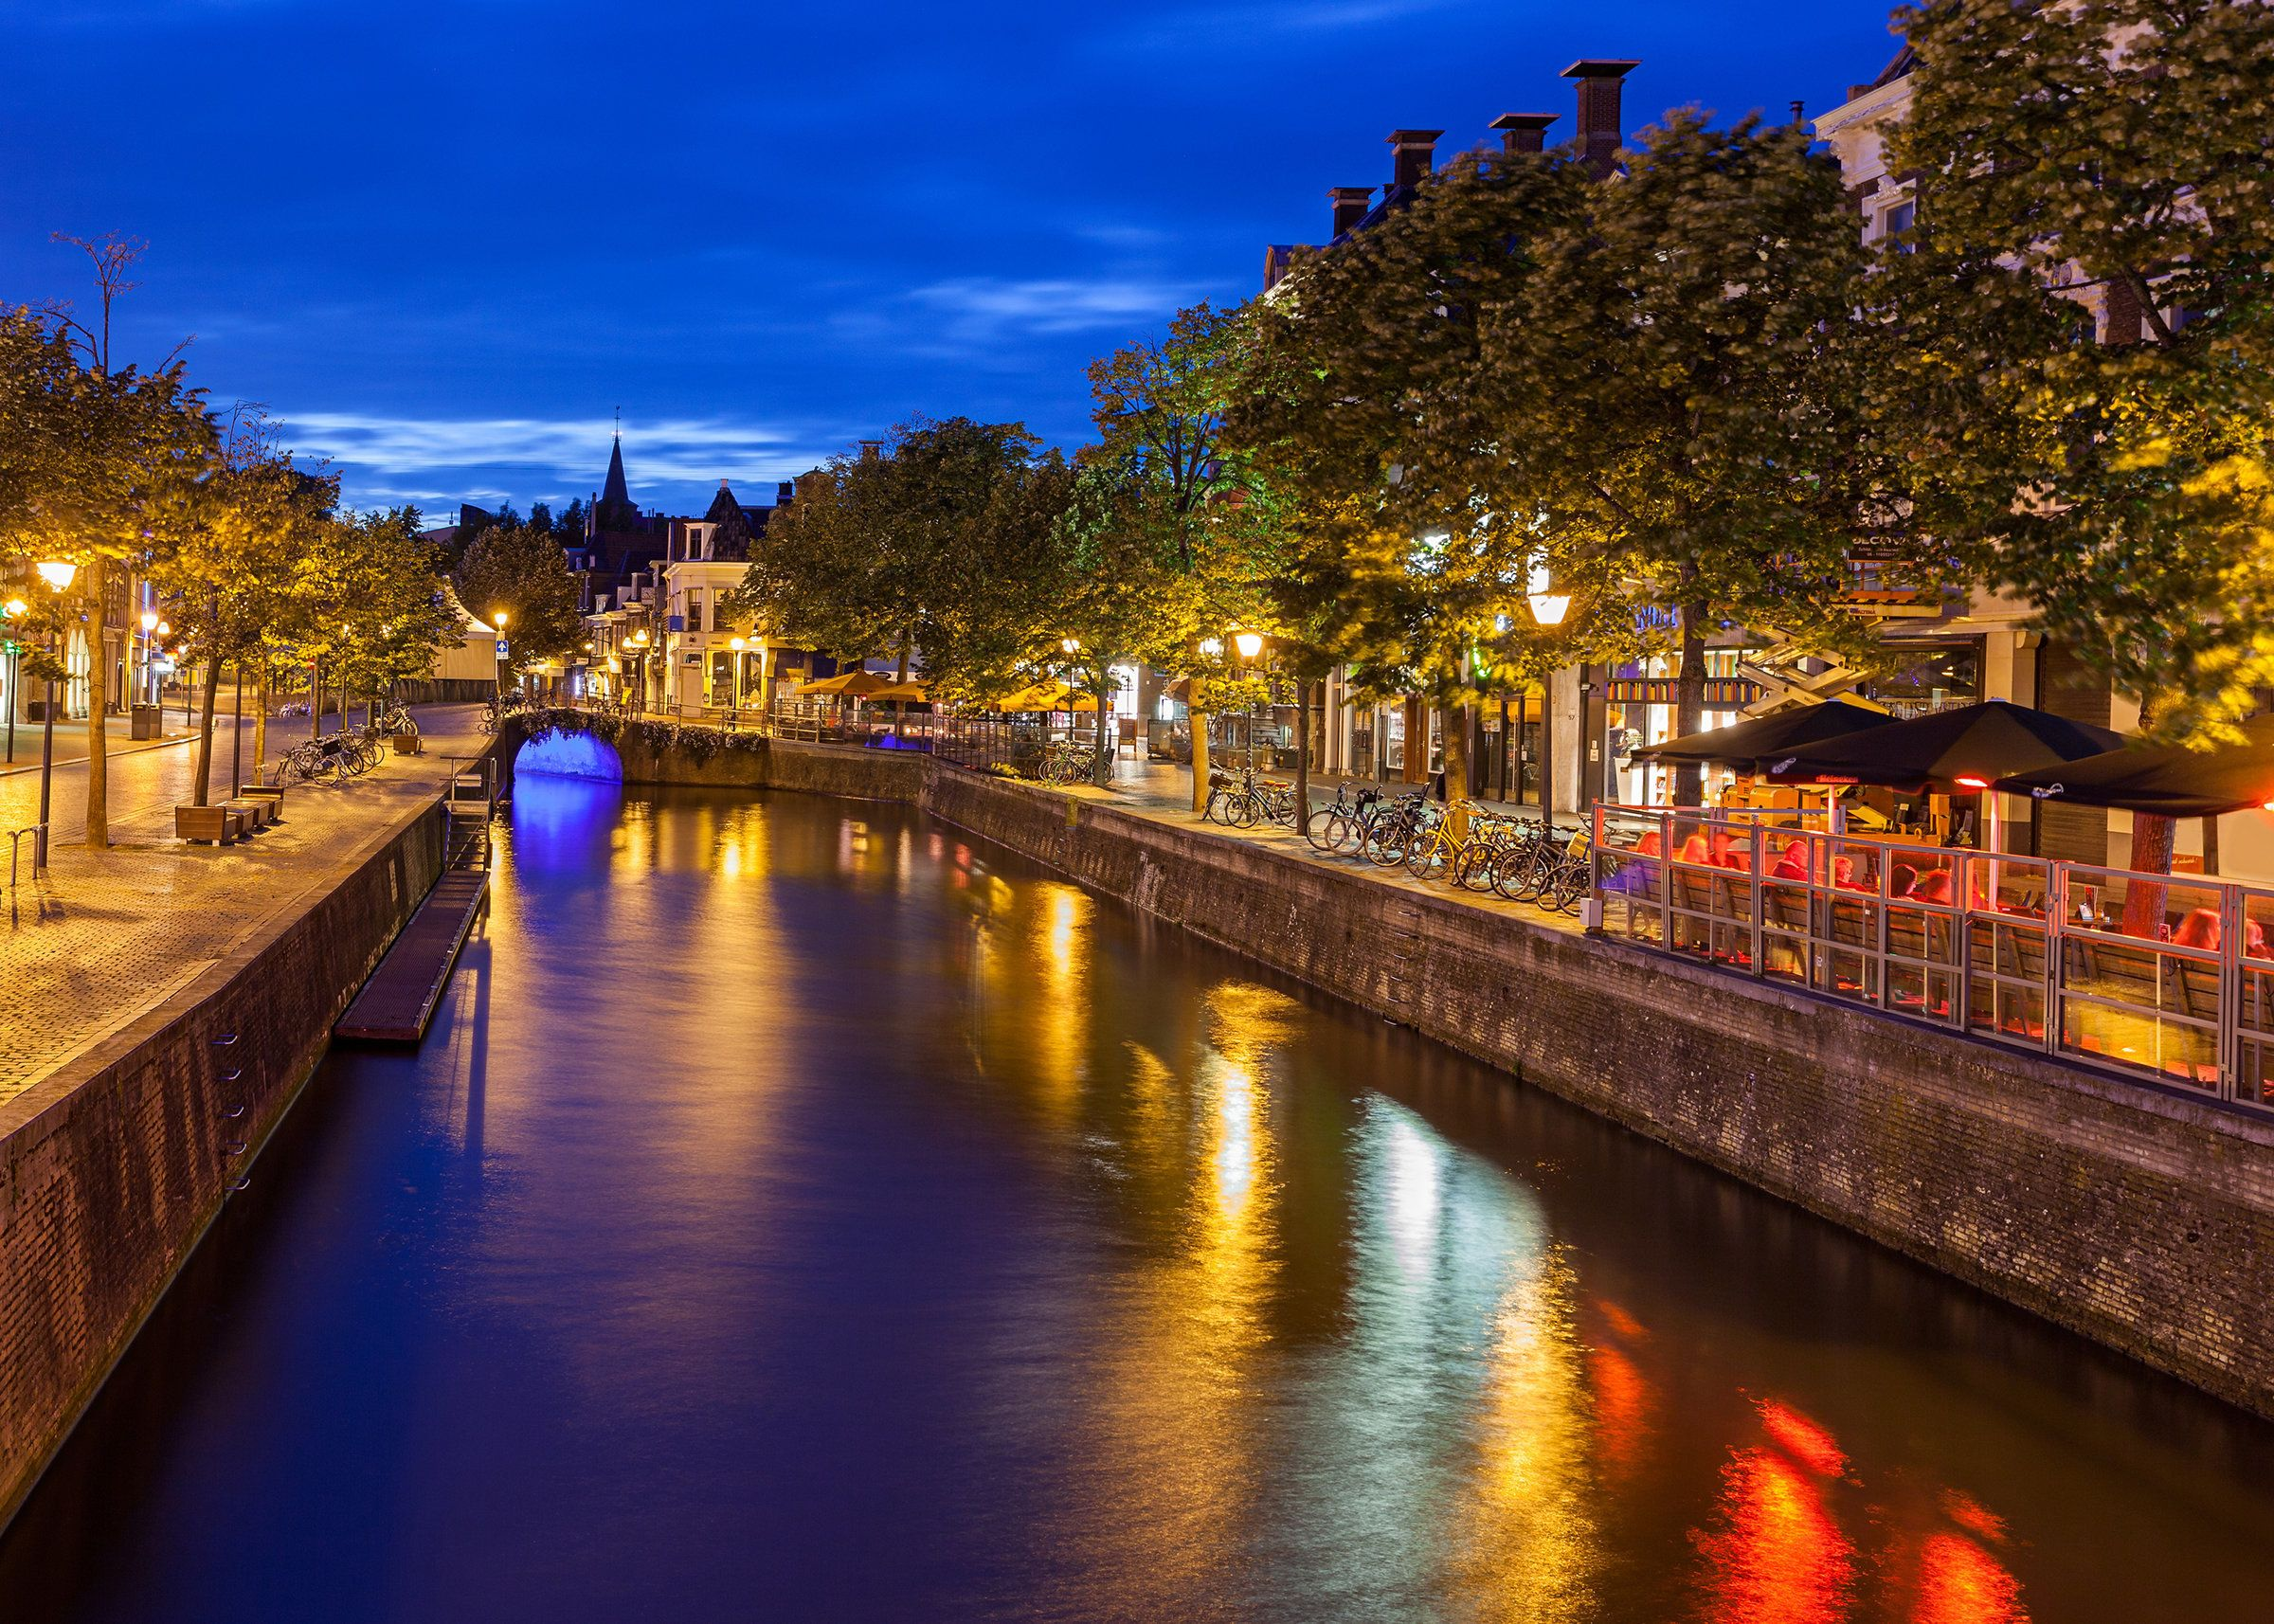 """Most people head straight to Amsterdam when visiting the Netherlands, but the <a href=""""https://www.lonelyplanet.com/the-nethe"""